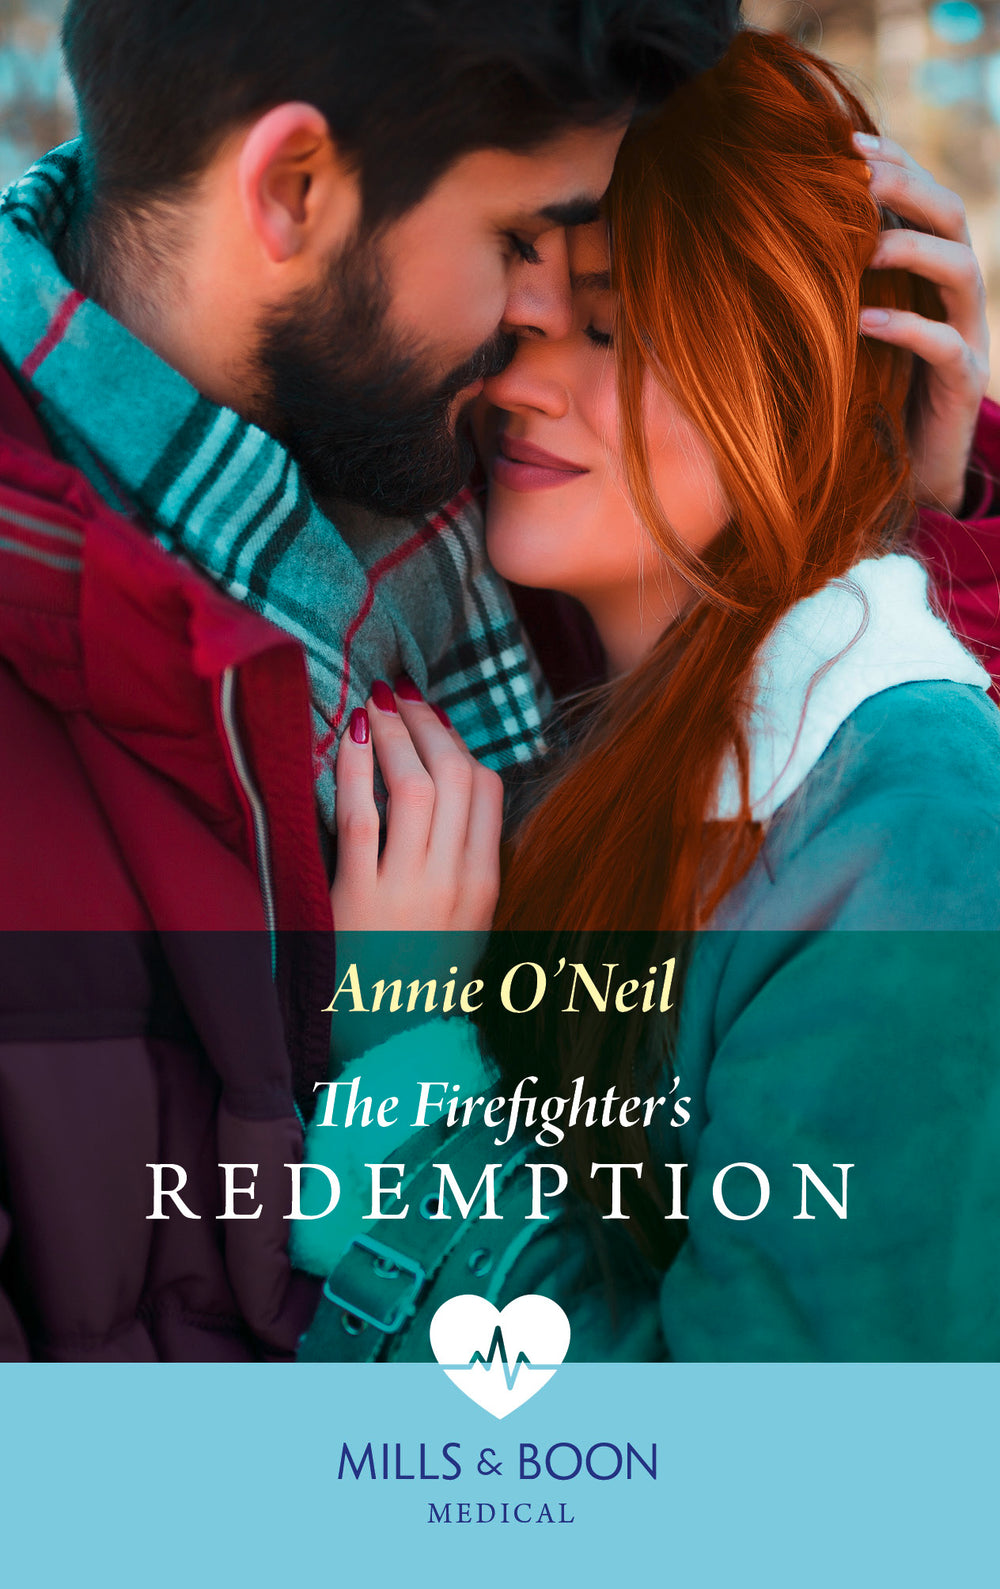 The Firefighter's Redemption - Chapter 7